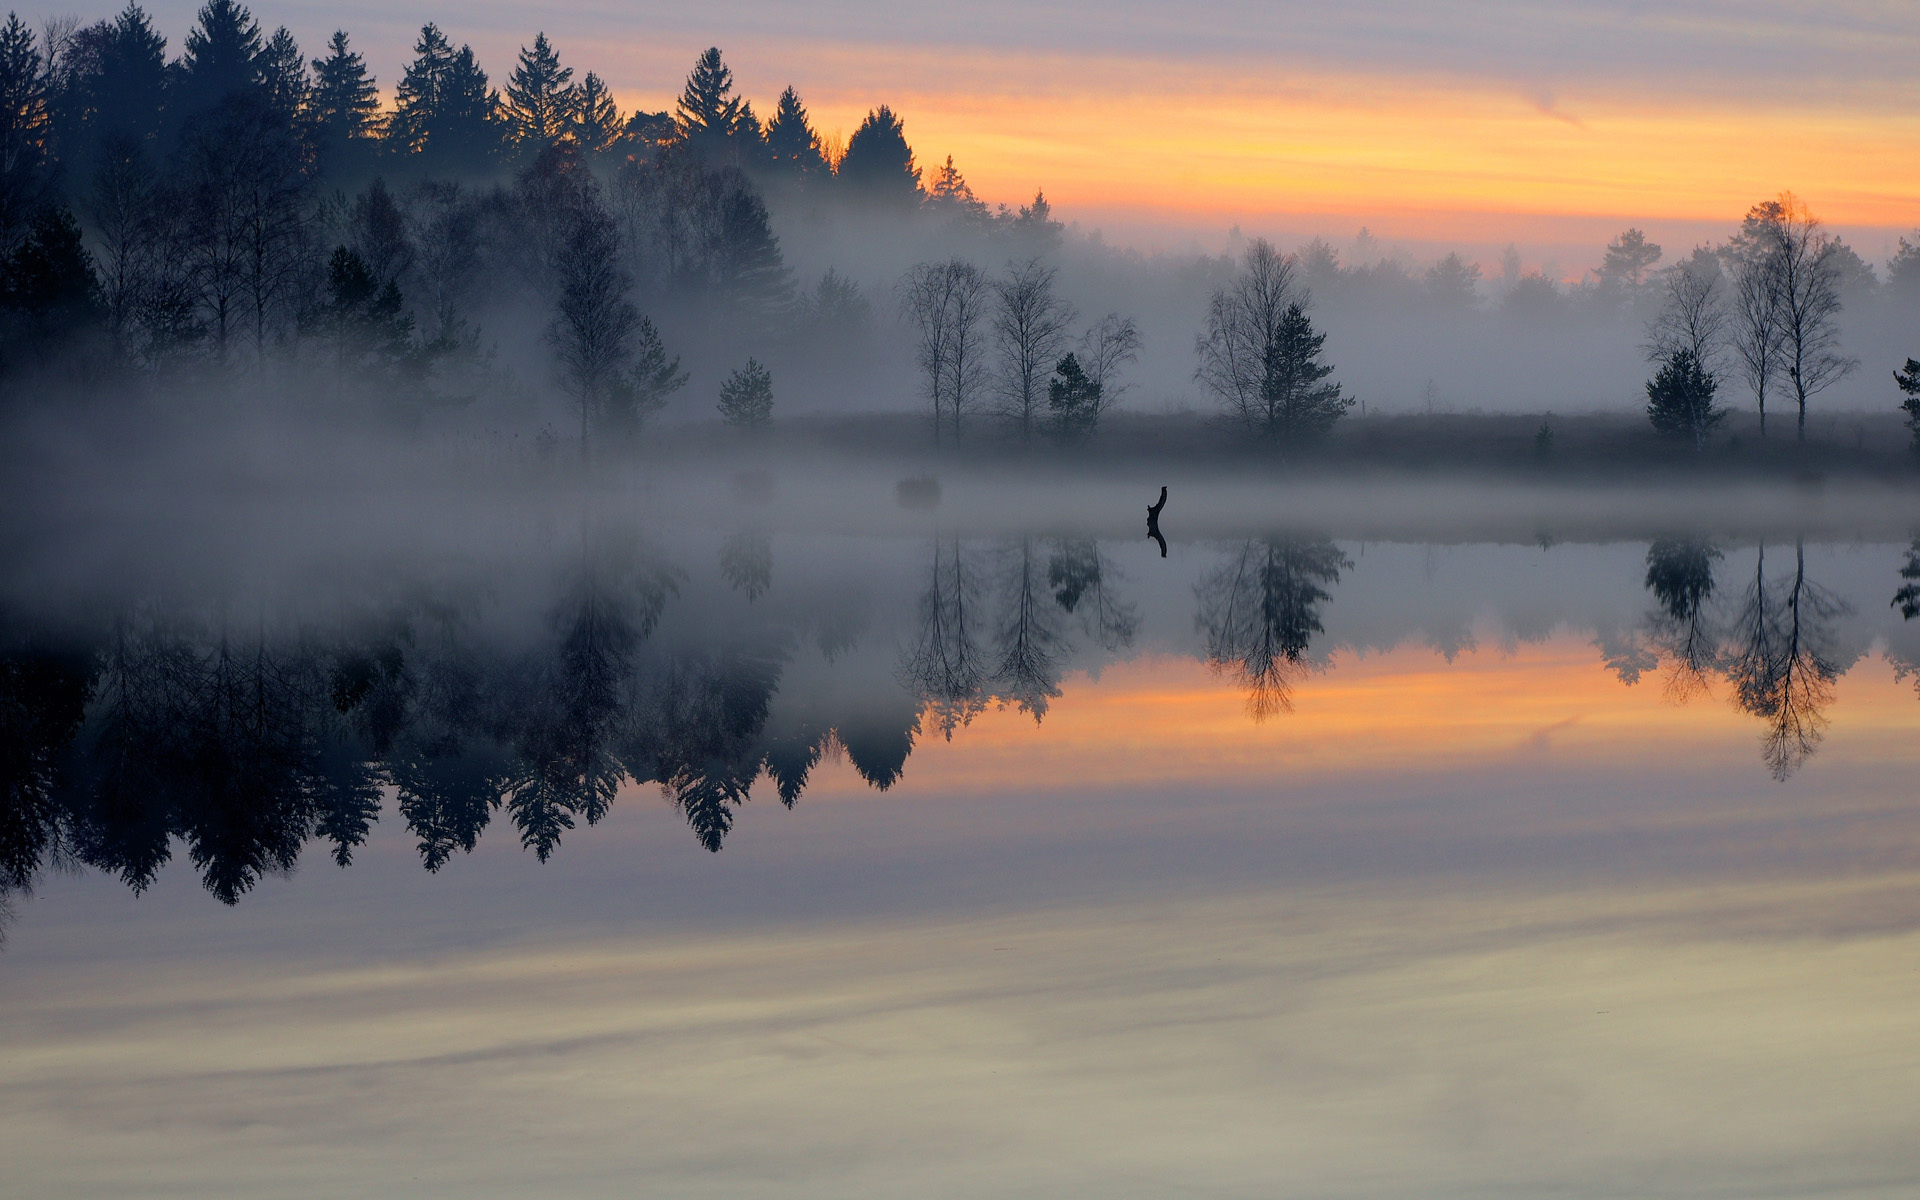 Morning pond forest mist smooth surface lake sunrise trees fog sky